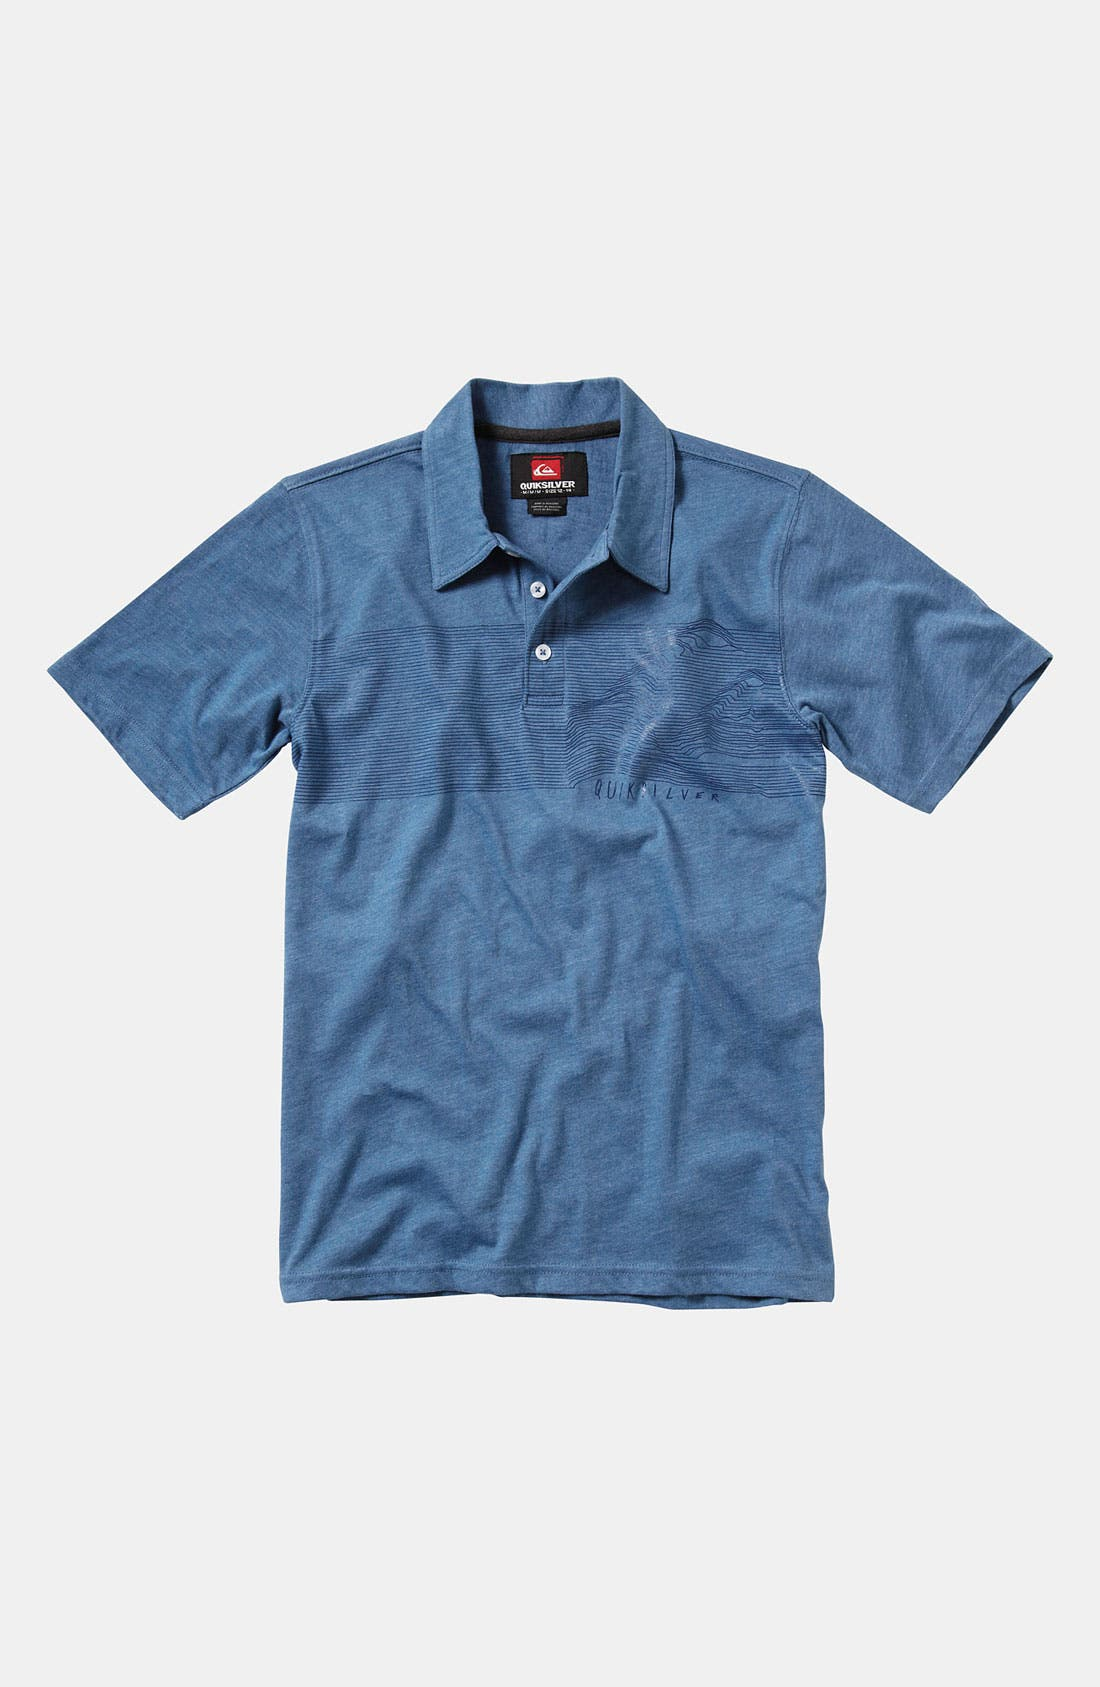 Alternate Image 1 Selected - Quiksilver 'Big Time' Polo Shirt (Big Boys)